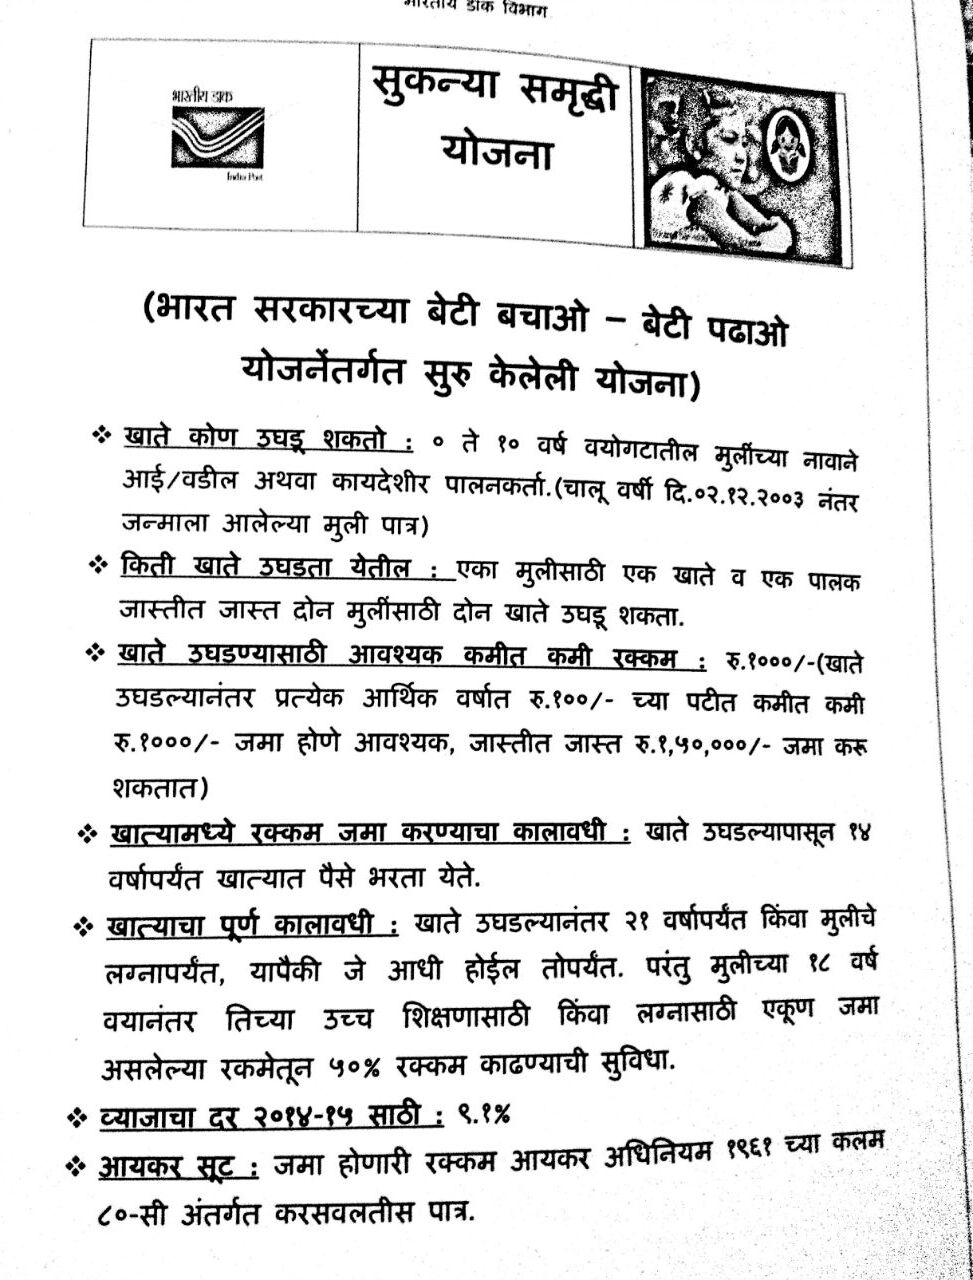 Pdf sukanya samriddhi hindi yojana in